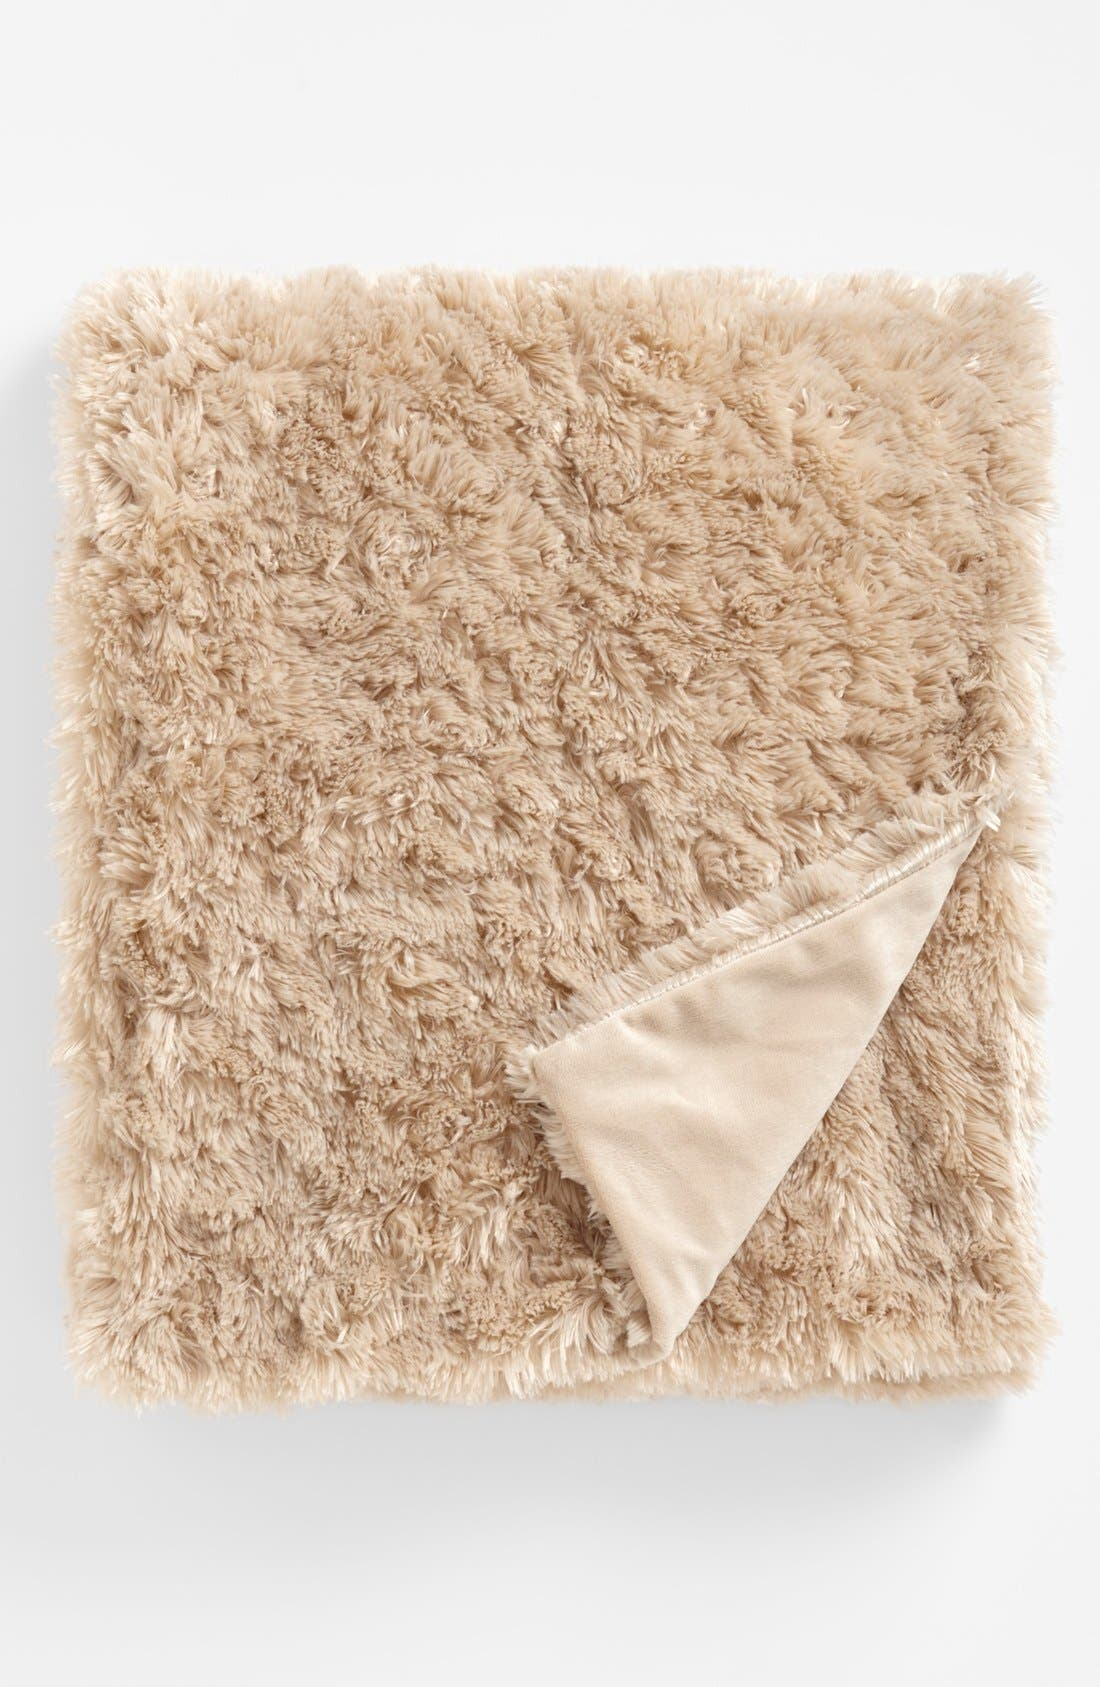 Main Image - Nordstrom at Home 'Shaggy' Plush Throw Blanket